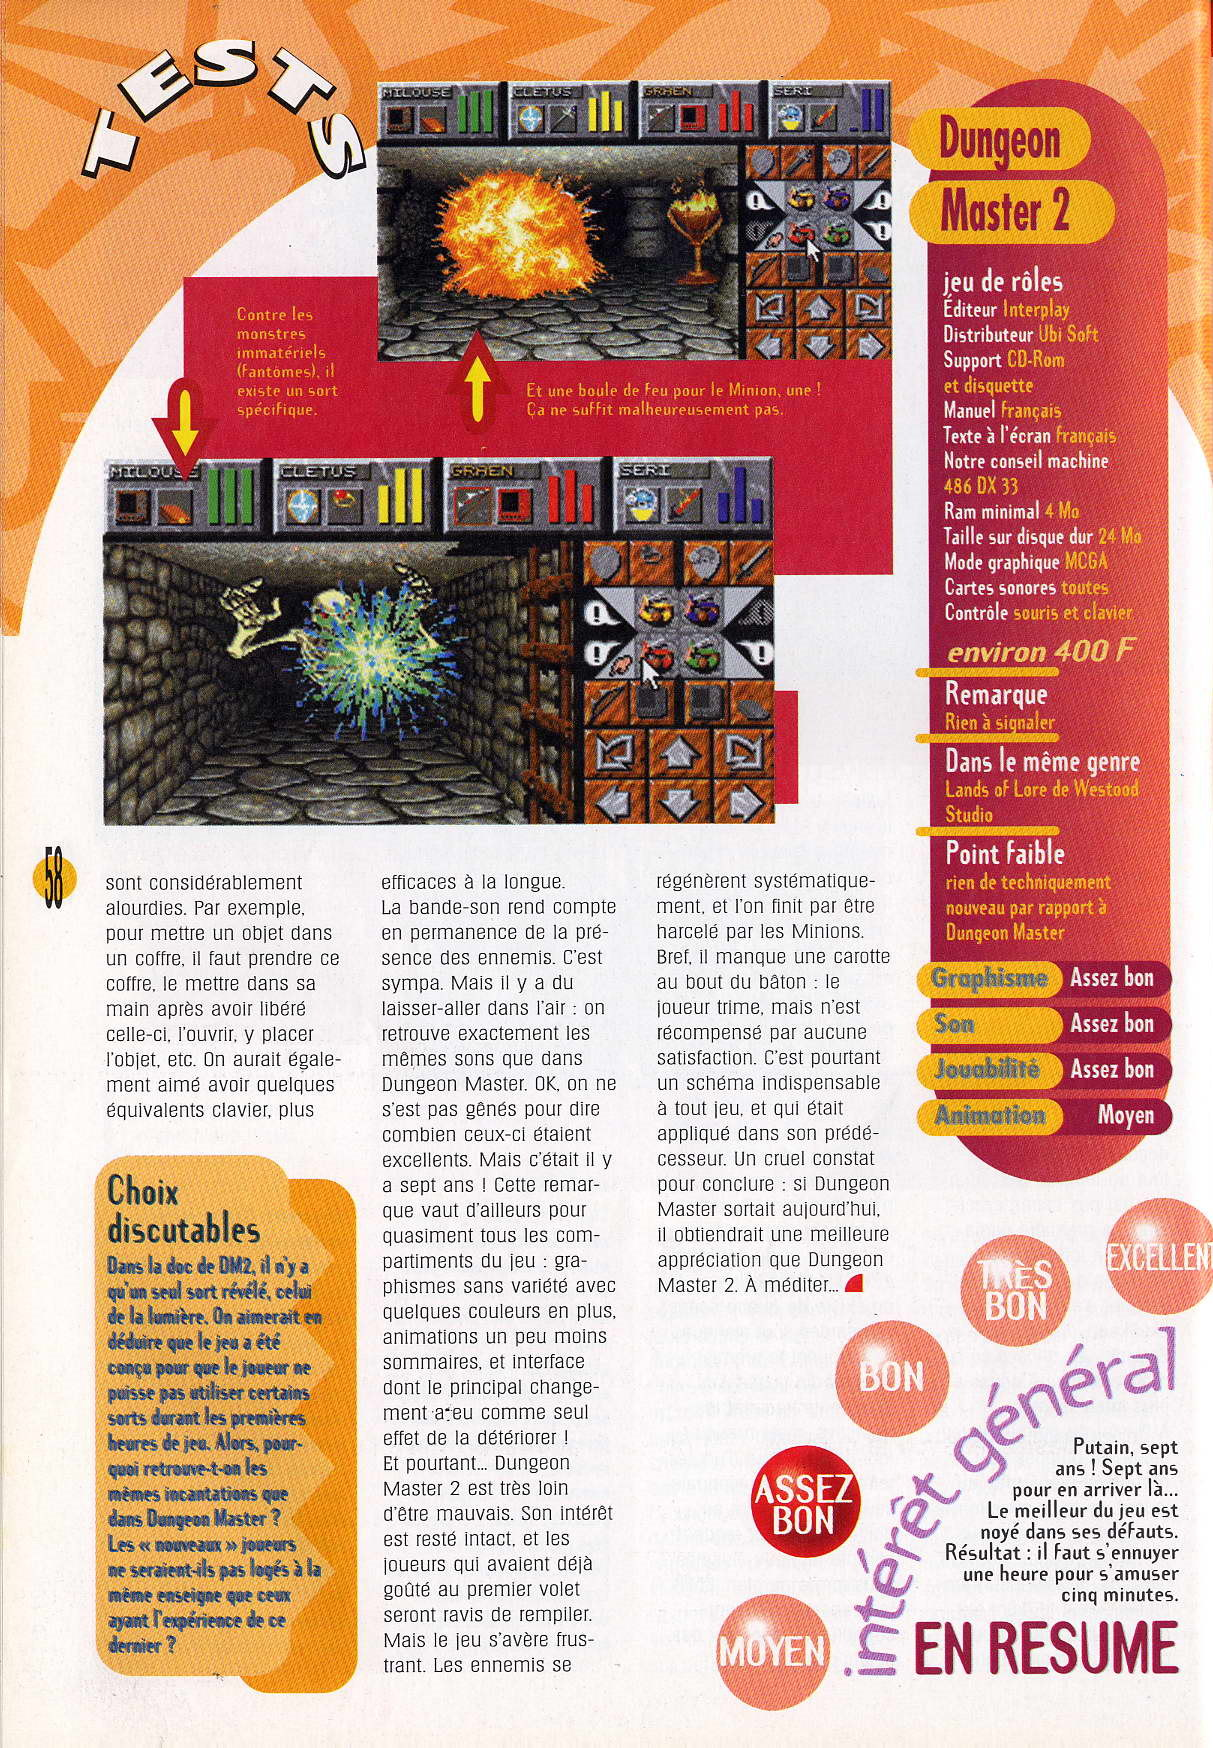 Dungeon Master II for PC Review published in French magazine 'Multimedia PC Player', Issue #24 September 1995, Page 58